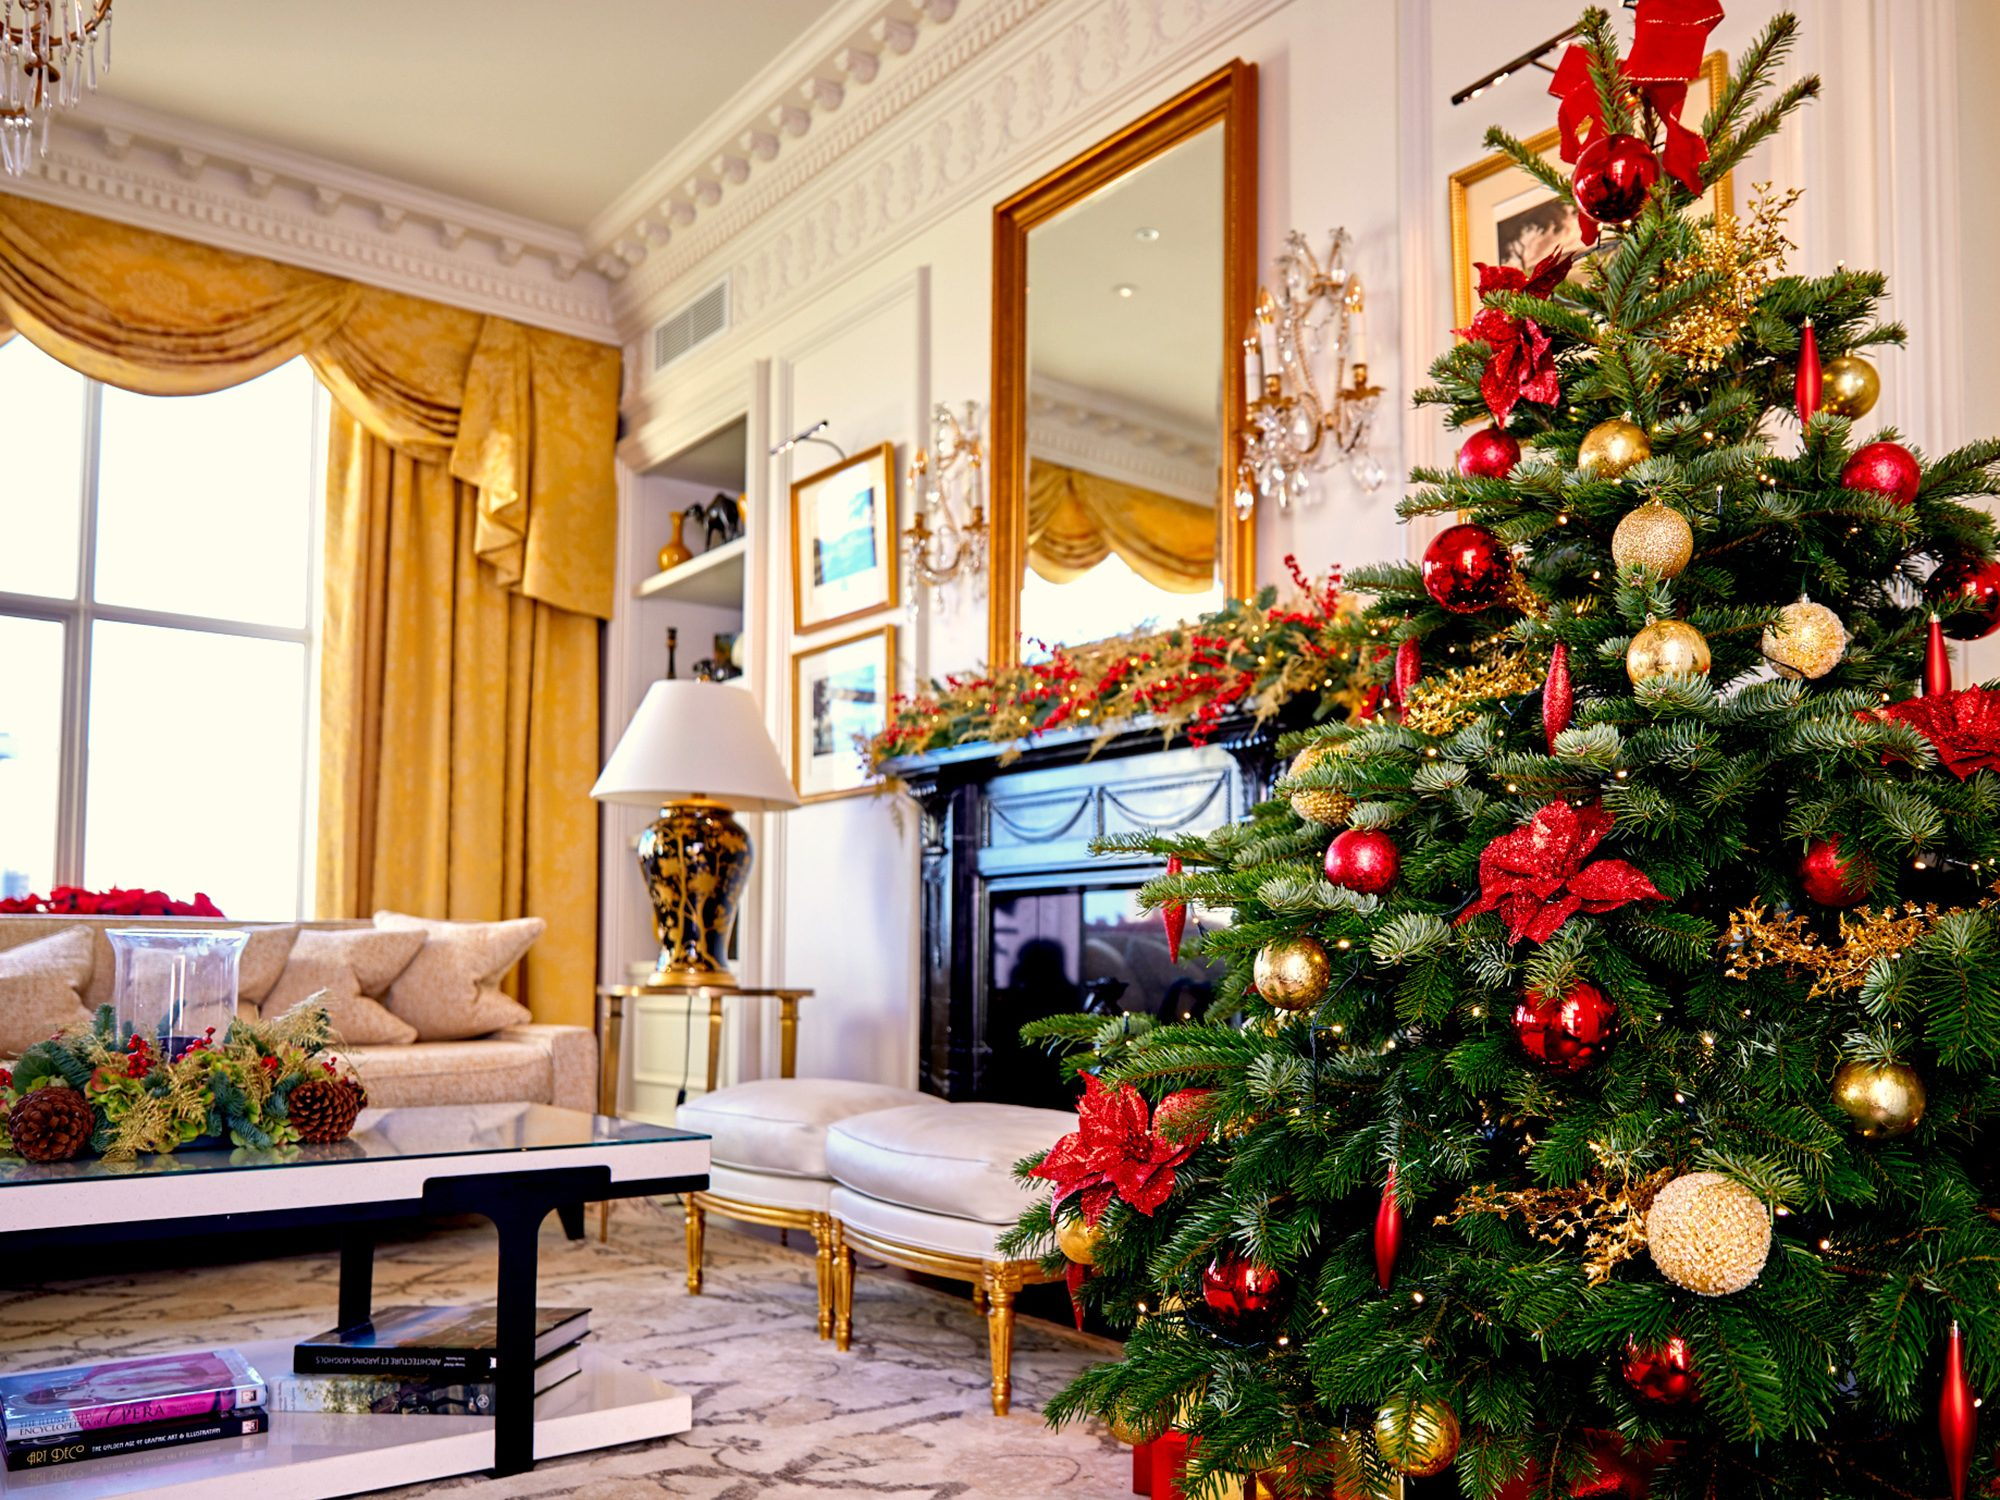 Royal Suite with Christmas tree